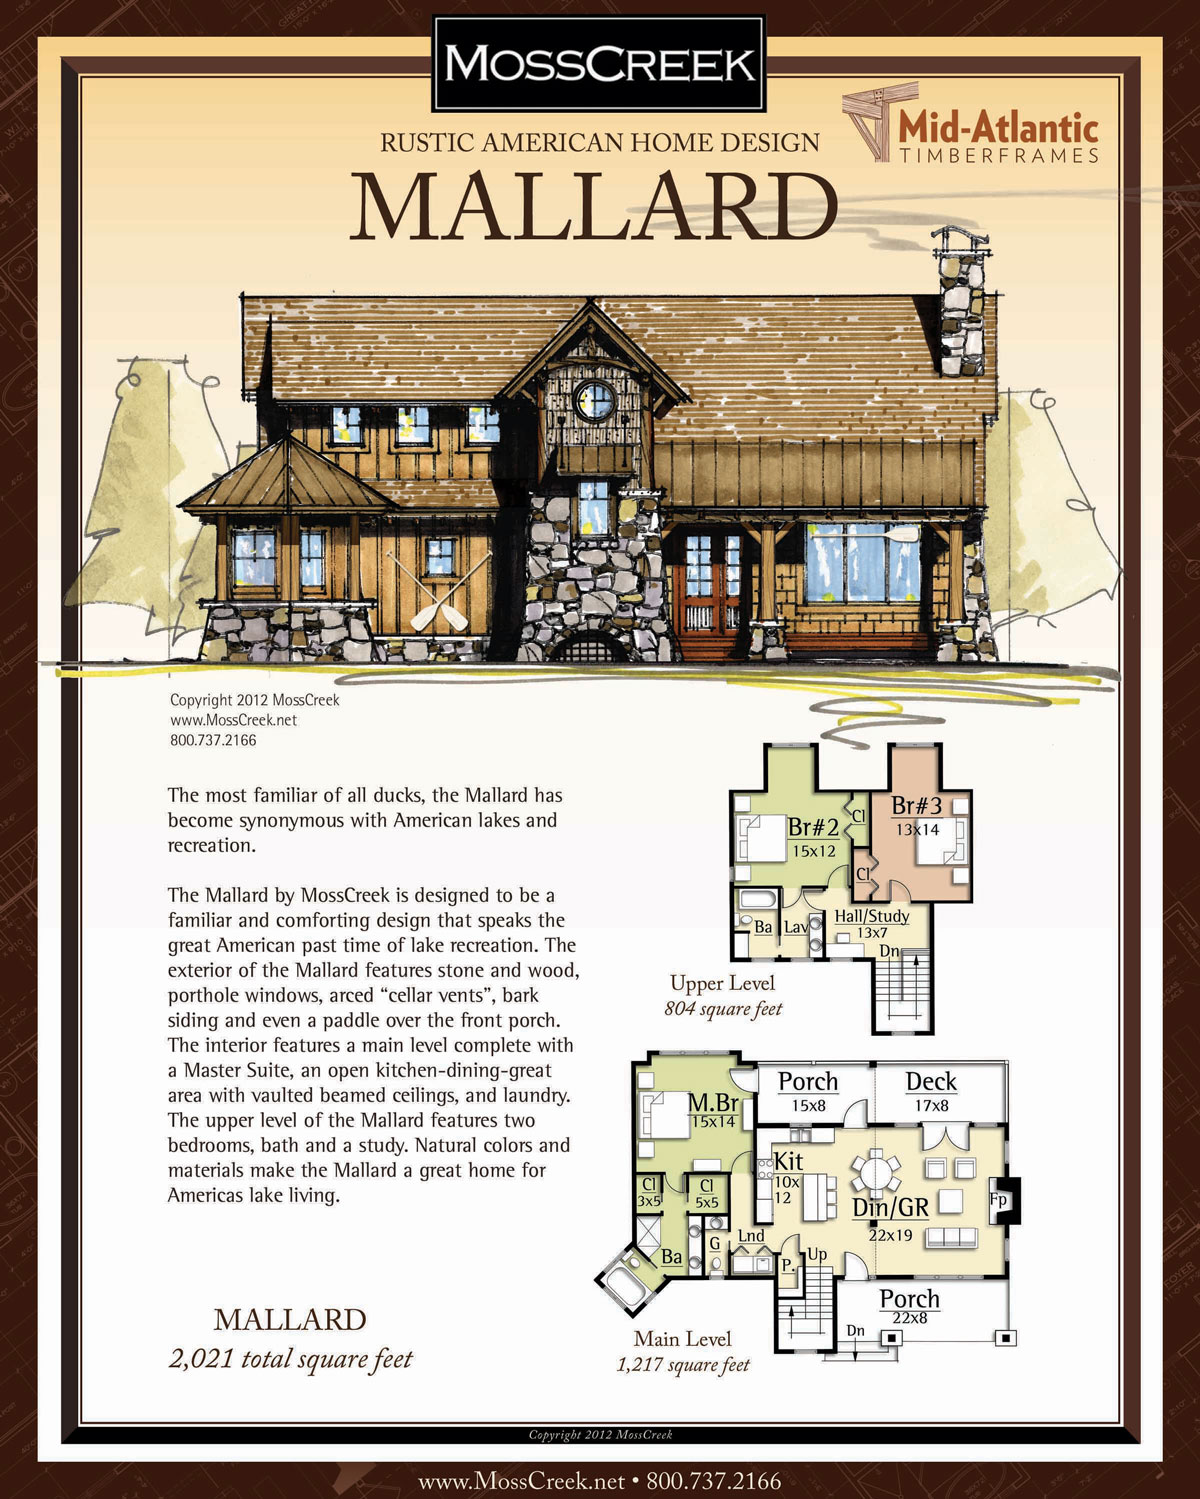 Mallard Timber Frame Home Plans